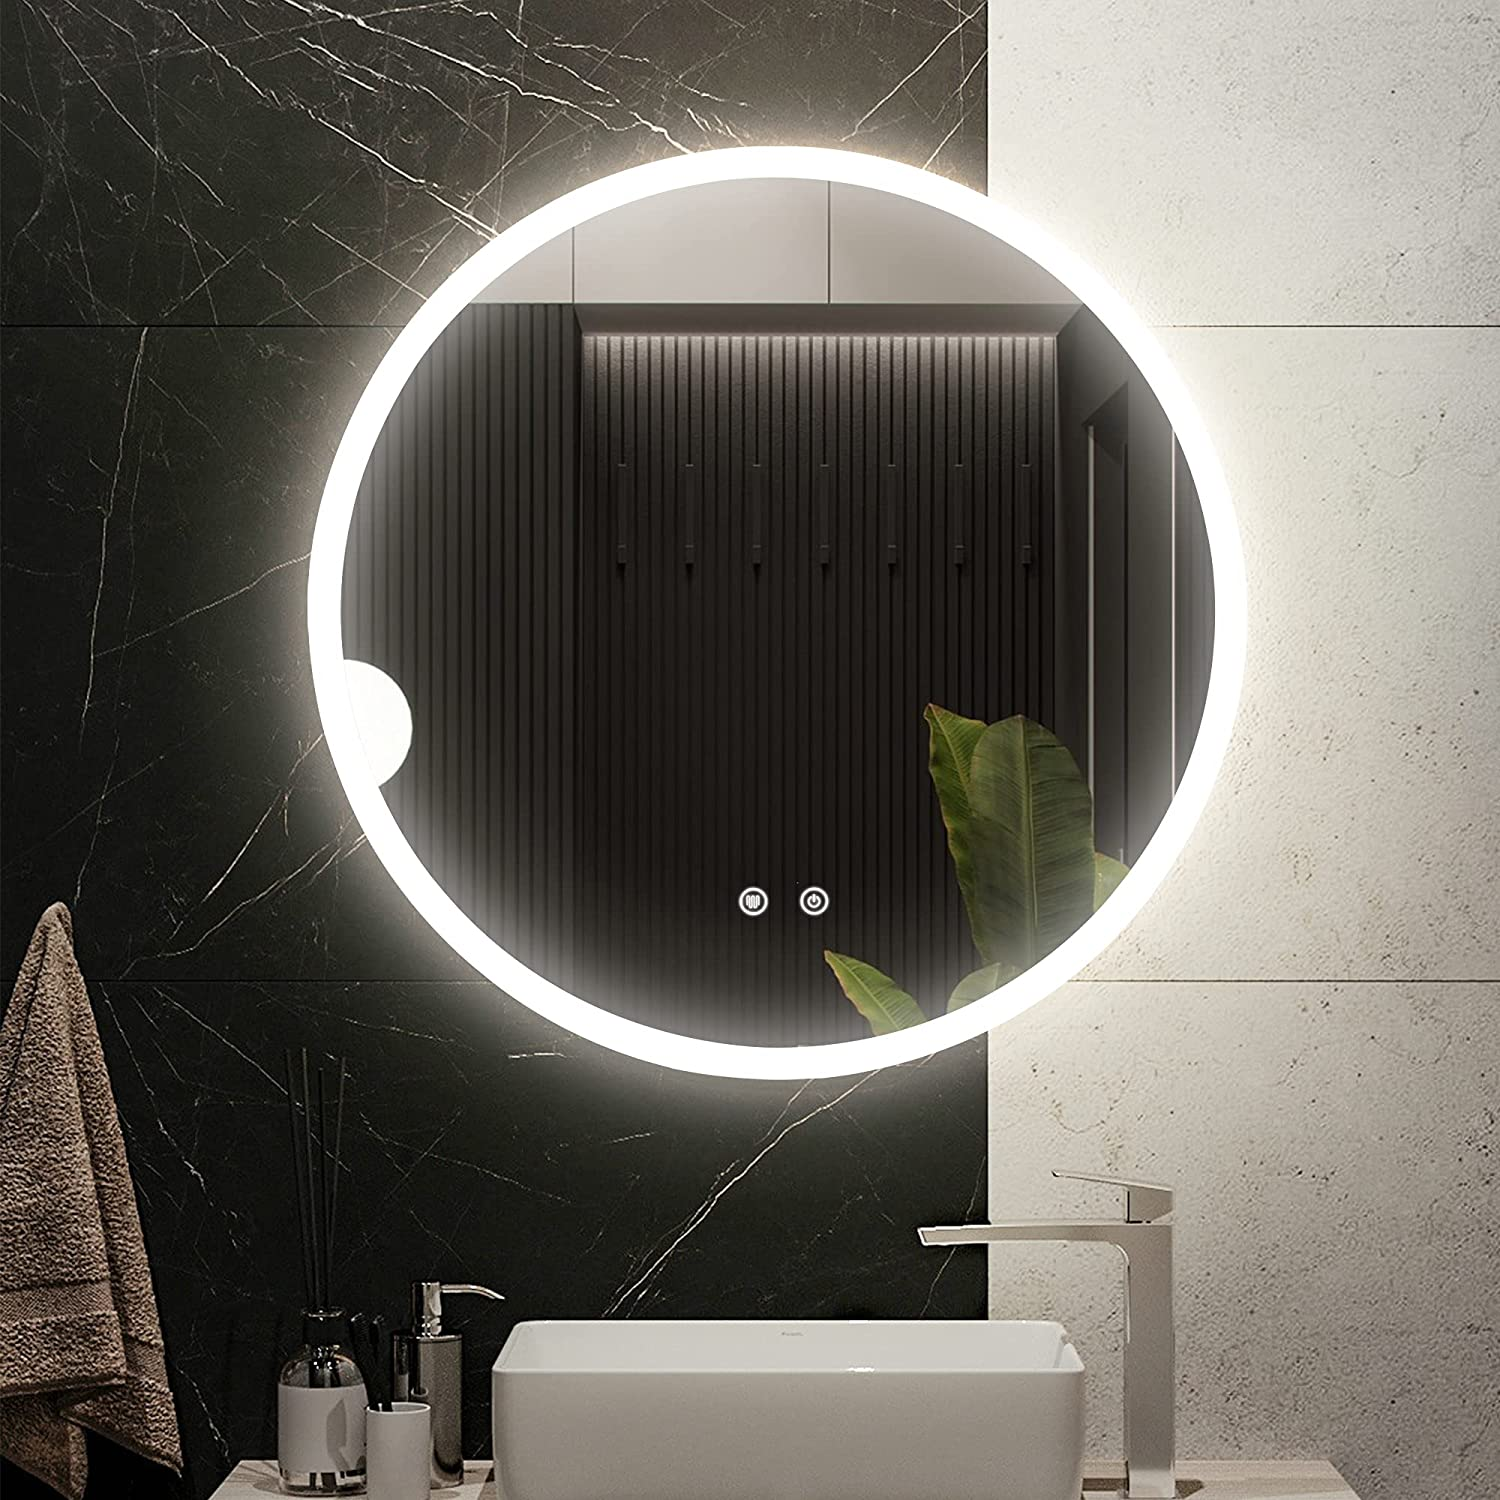 Vlsrka 24 Inch Ranking TOP15 Round Bathroom LED Lighted Mirror Wall Large-scale sale Mounted V